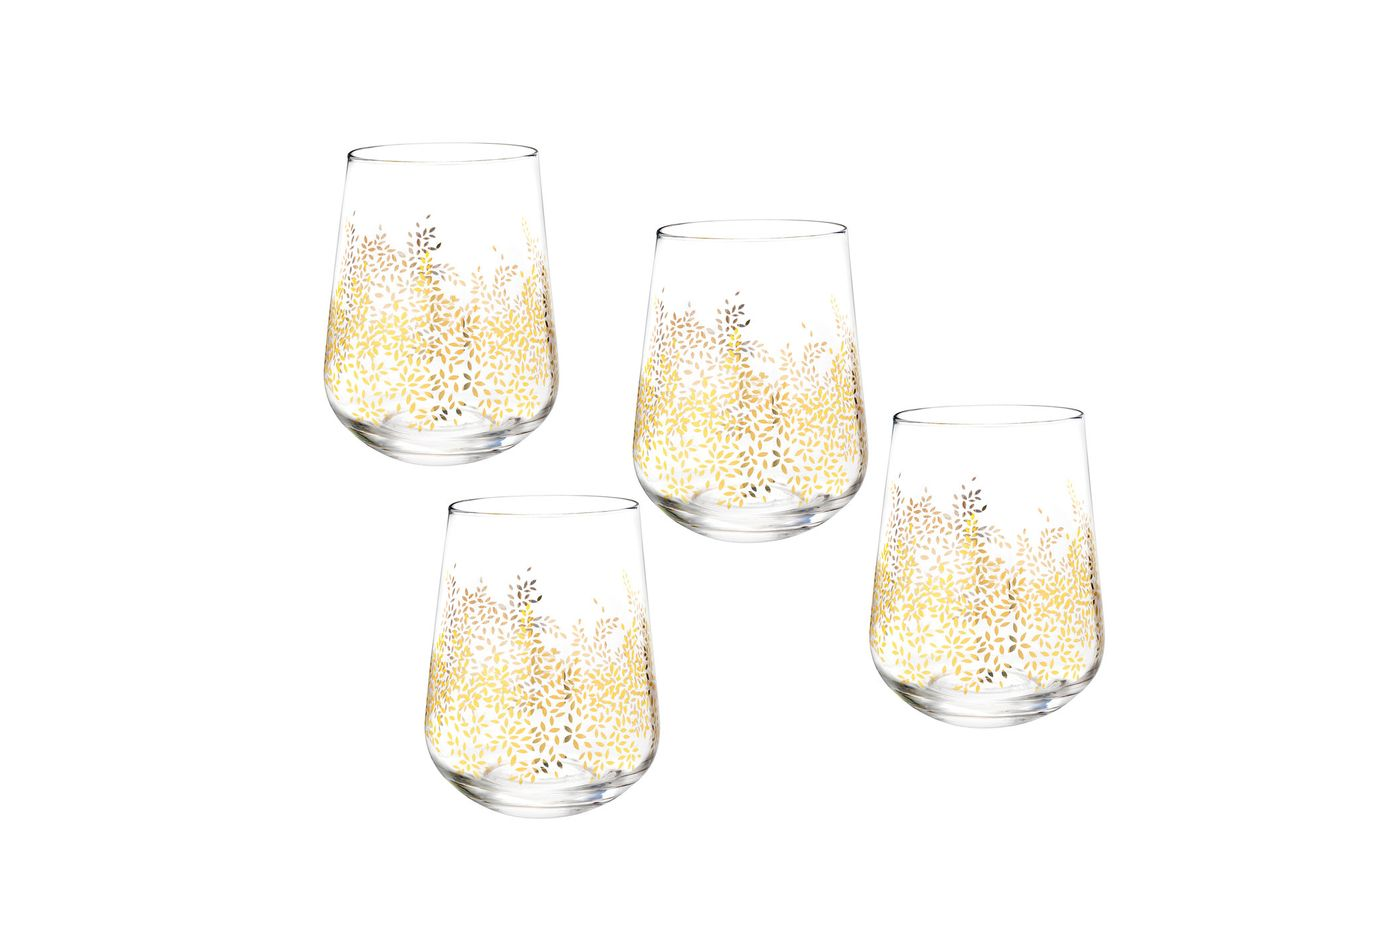 Sara Miller London for Portmeirion Chelsea Collection Set of 4 Wine Glasses Stemless thumb 1